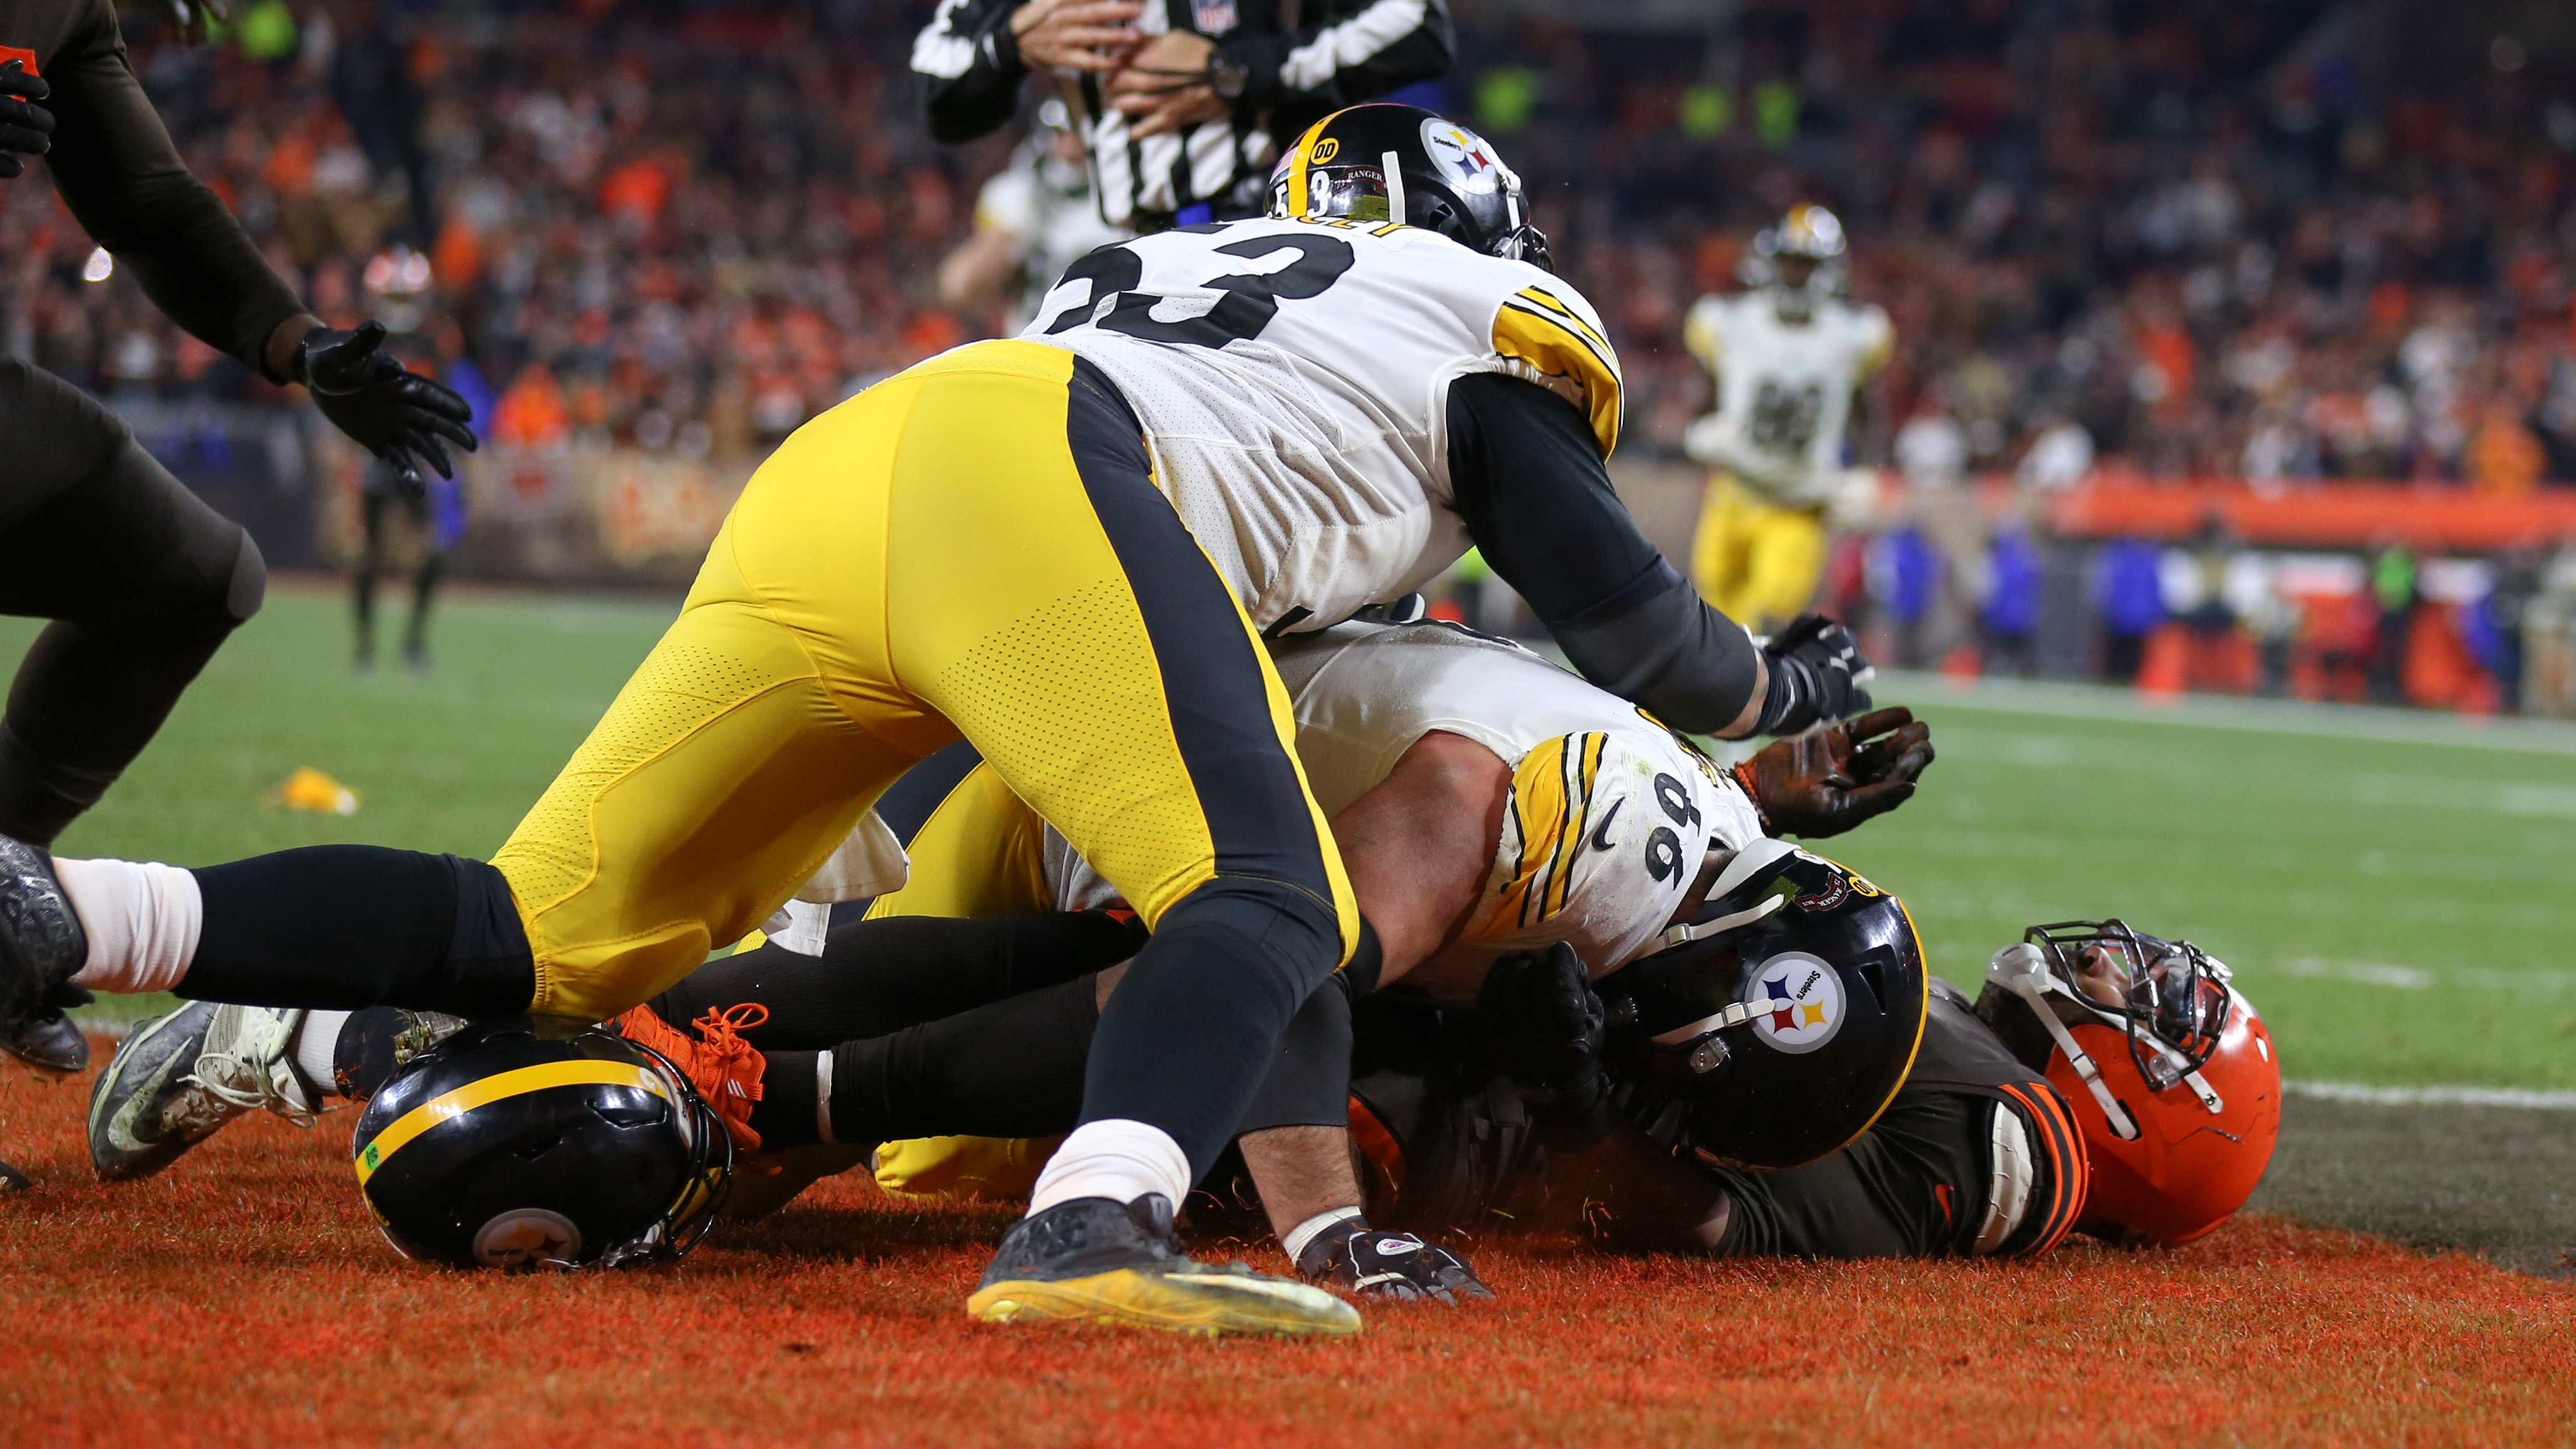 Maurkice Pouncey, Larry Ogunjobi suspended for roles in fracas